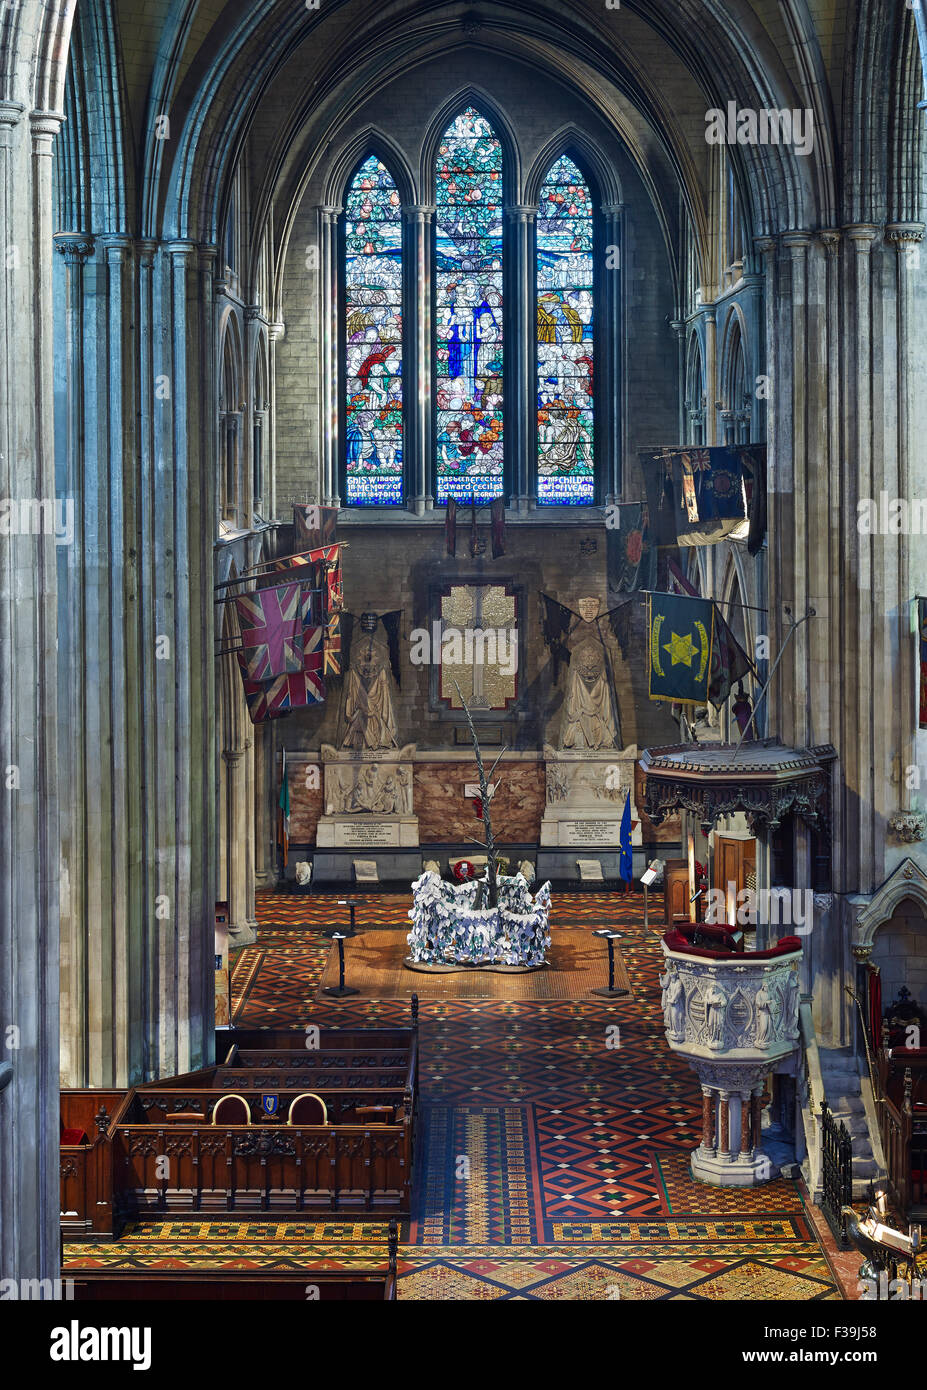 St Patrick's Cathedral Dublin north transept - Stock Image